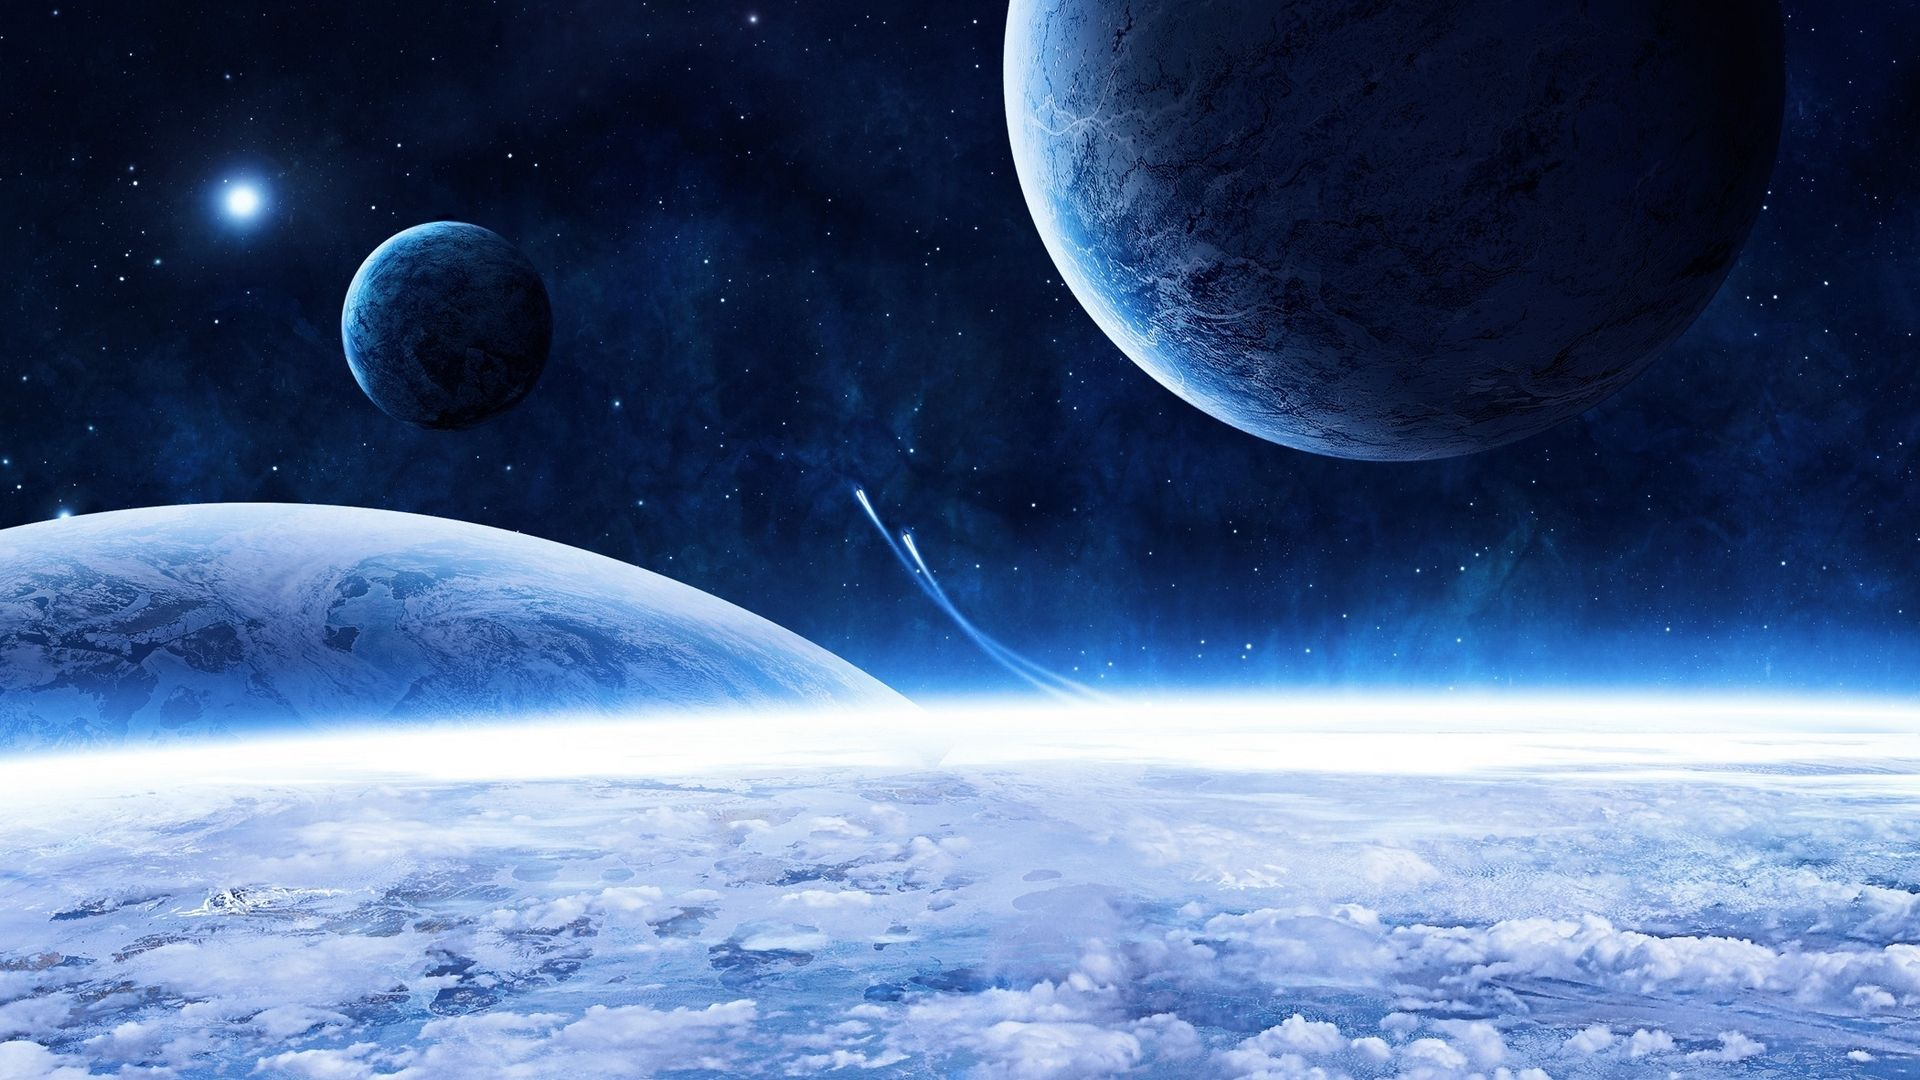 Outer Space wallpaper photo